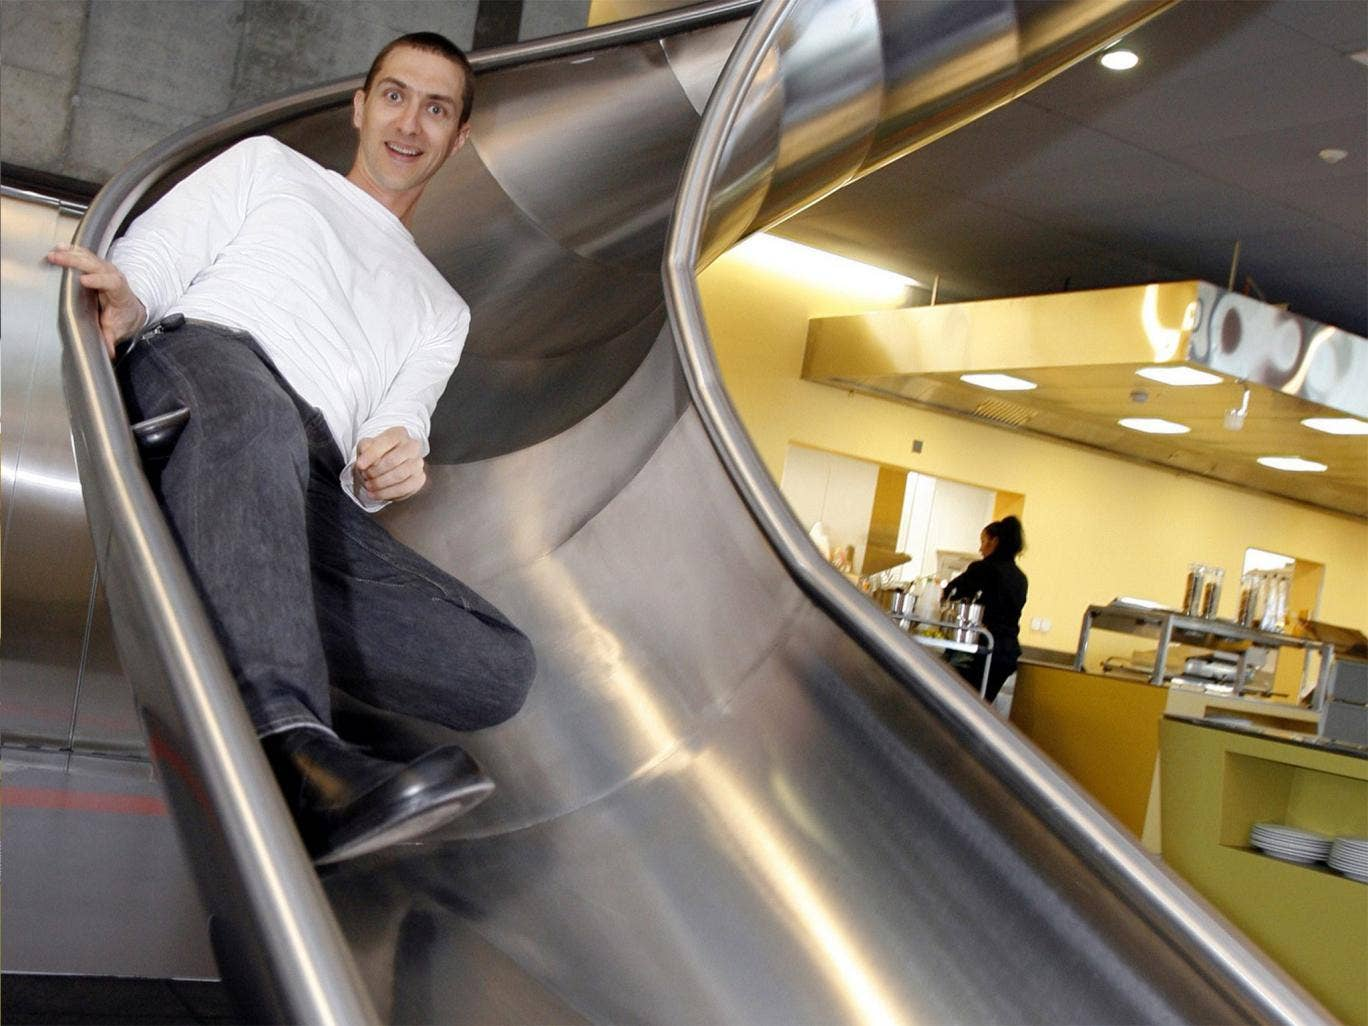 Down time: an employee of Google uses the slide to get to the canteen